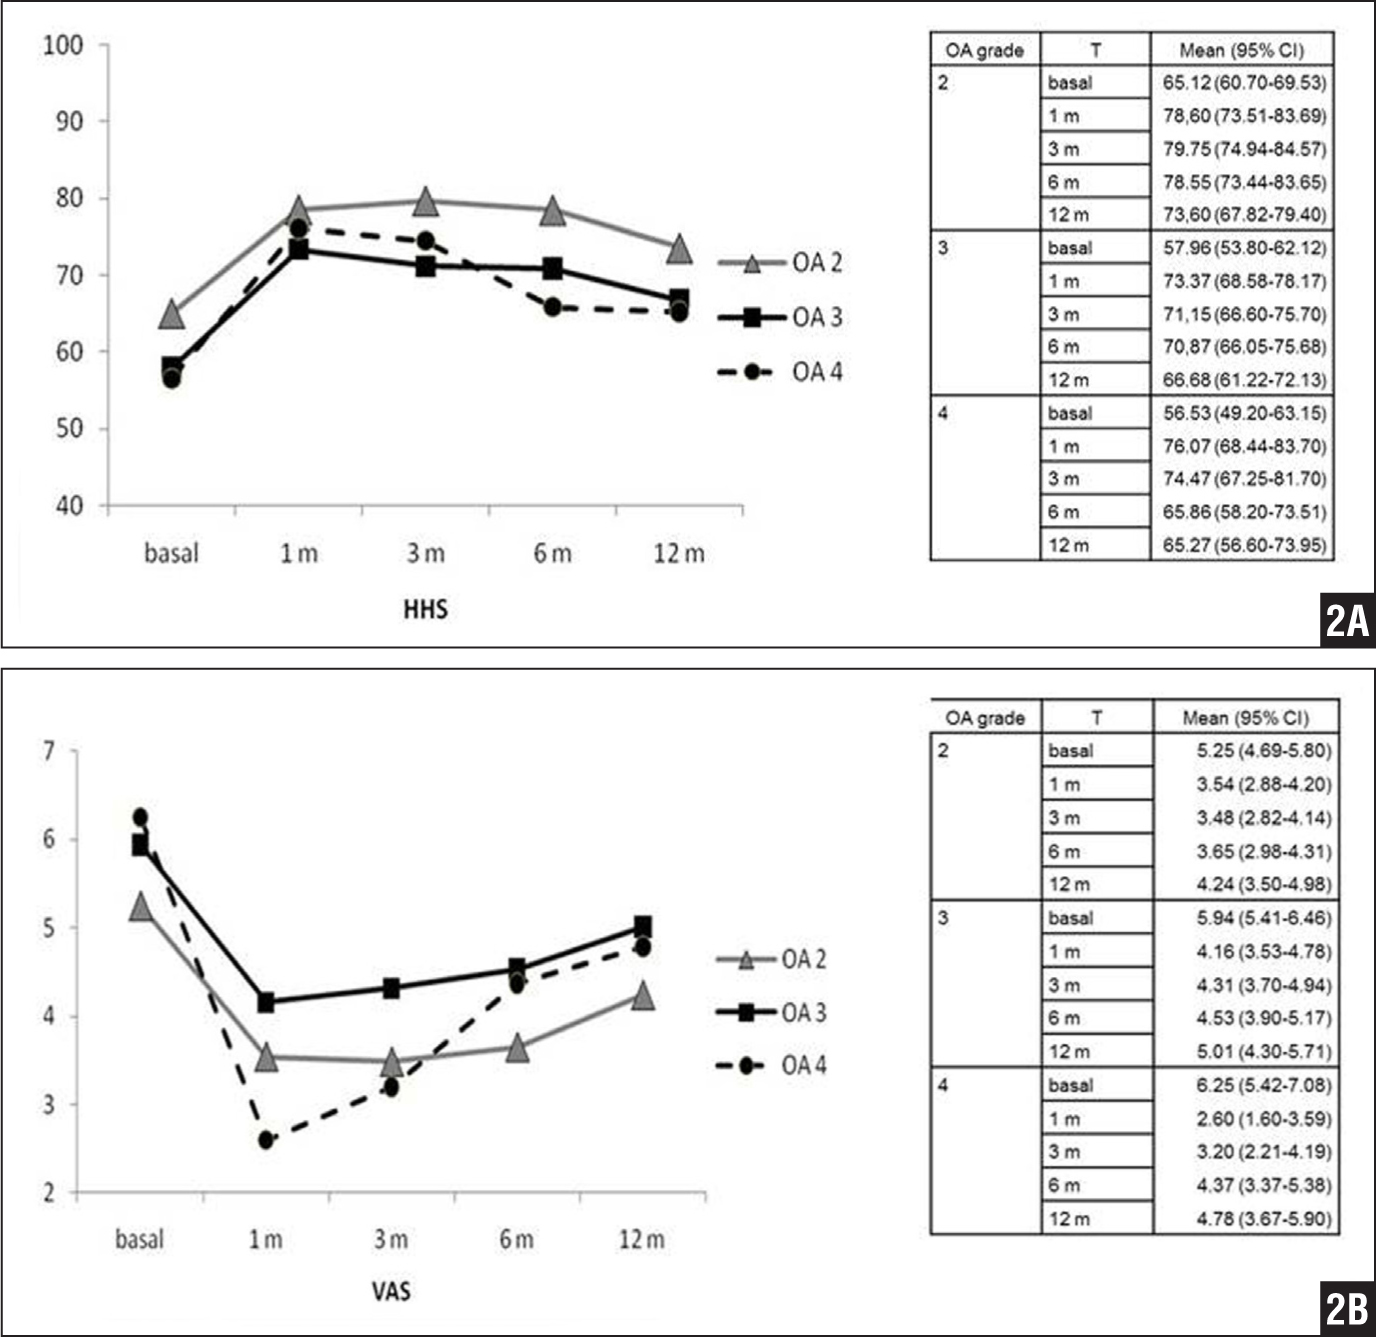 Graphs showing Harris Hip Score (HHS) (A) and visual analog scale (VAS) score (B) temporal evolution in relation to osteoarthritis (OA) grade independent of treatment type. Abbreviations: CI, confidence interval; T, time.